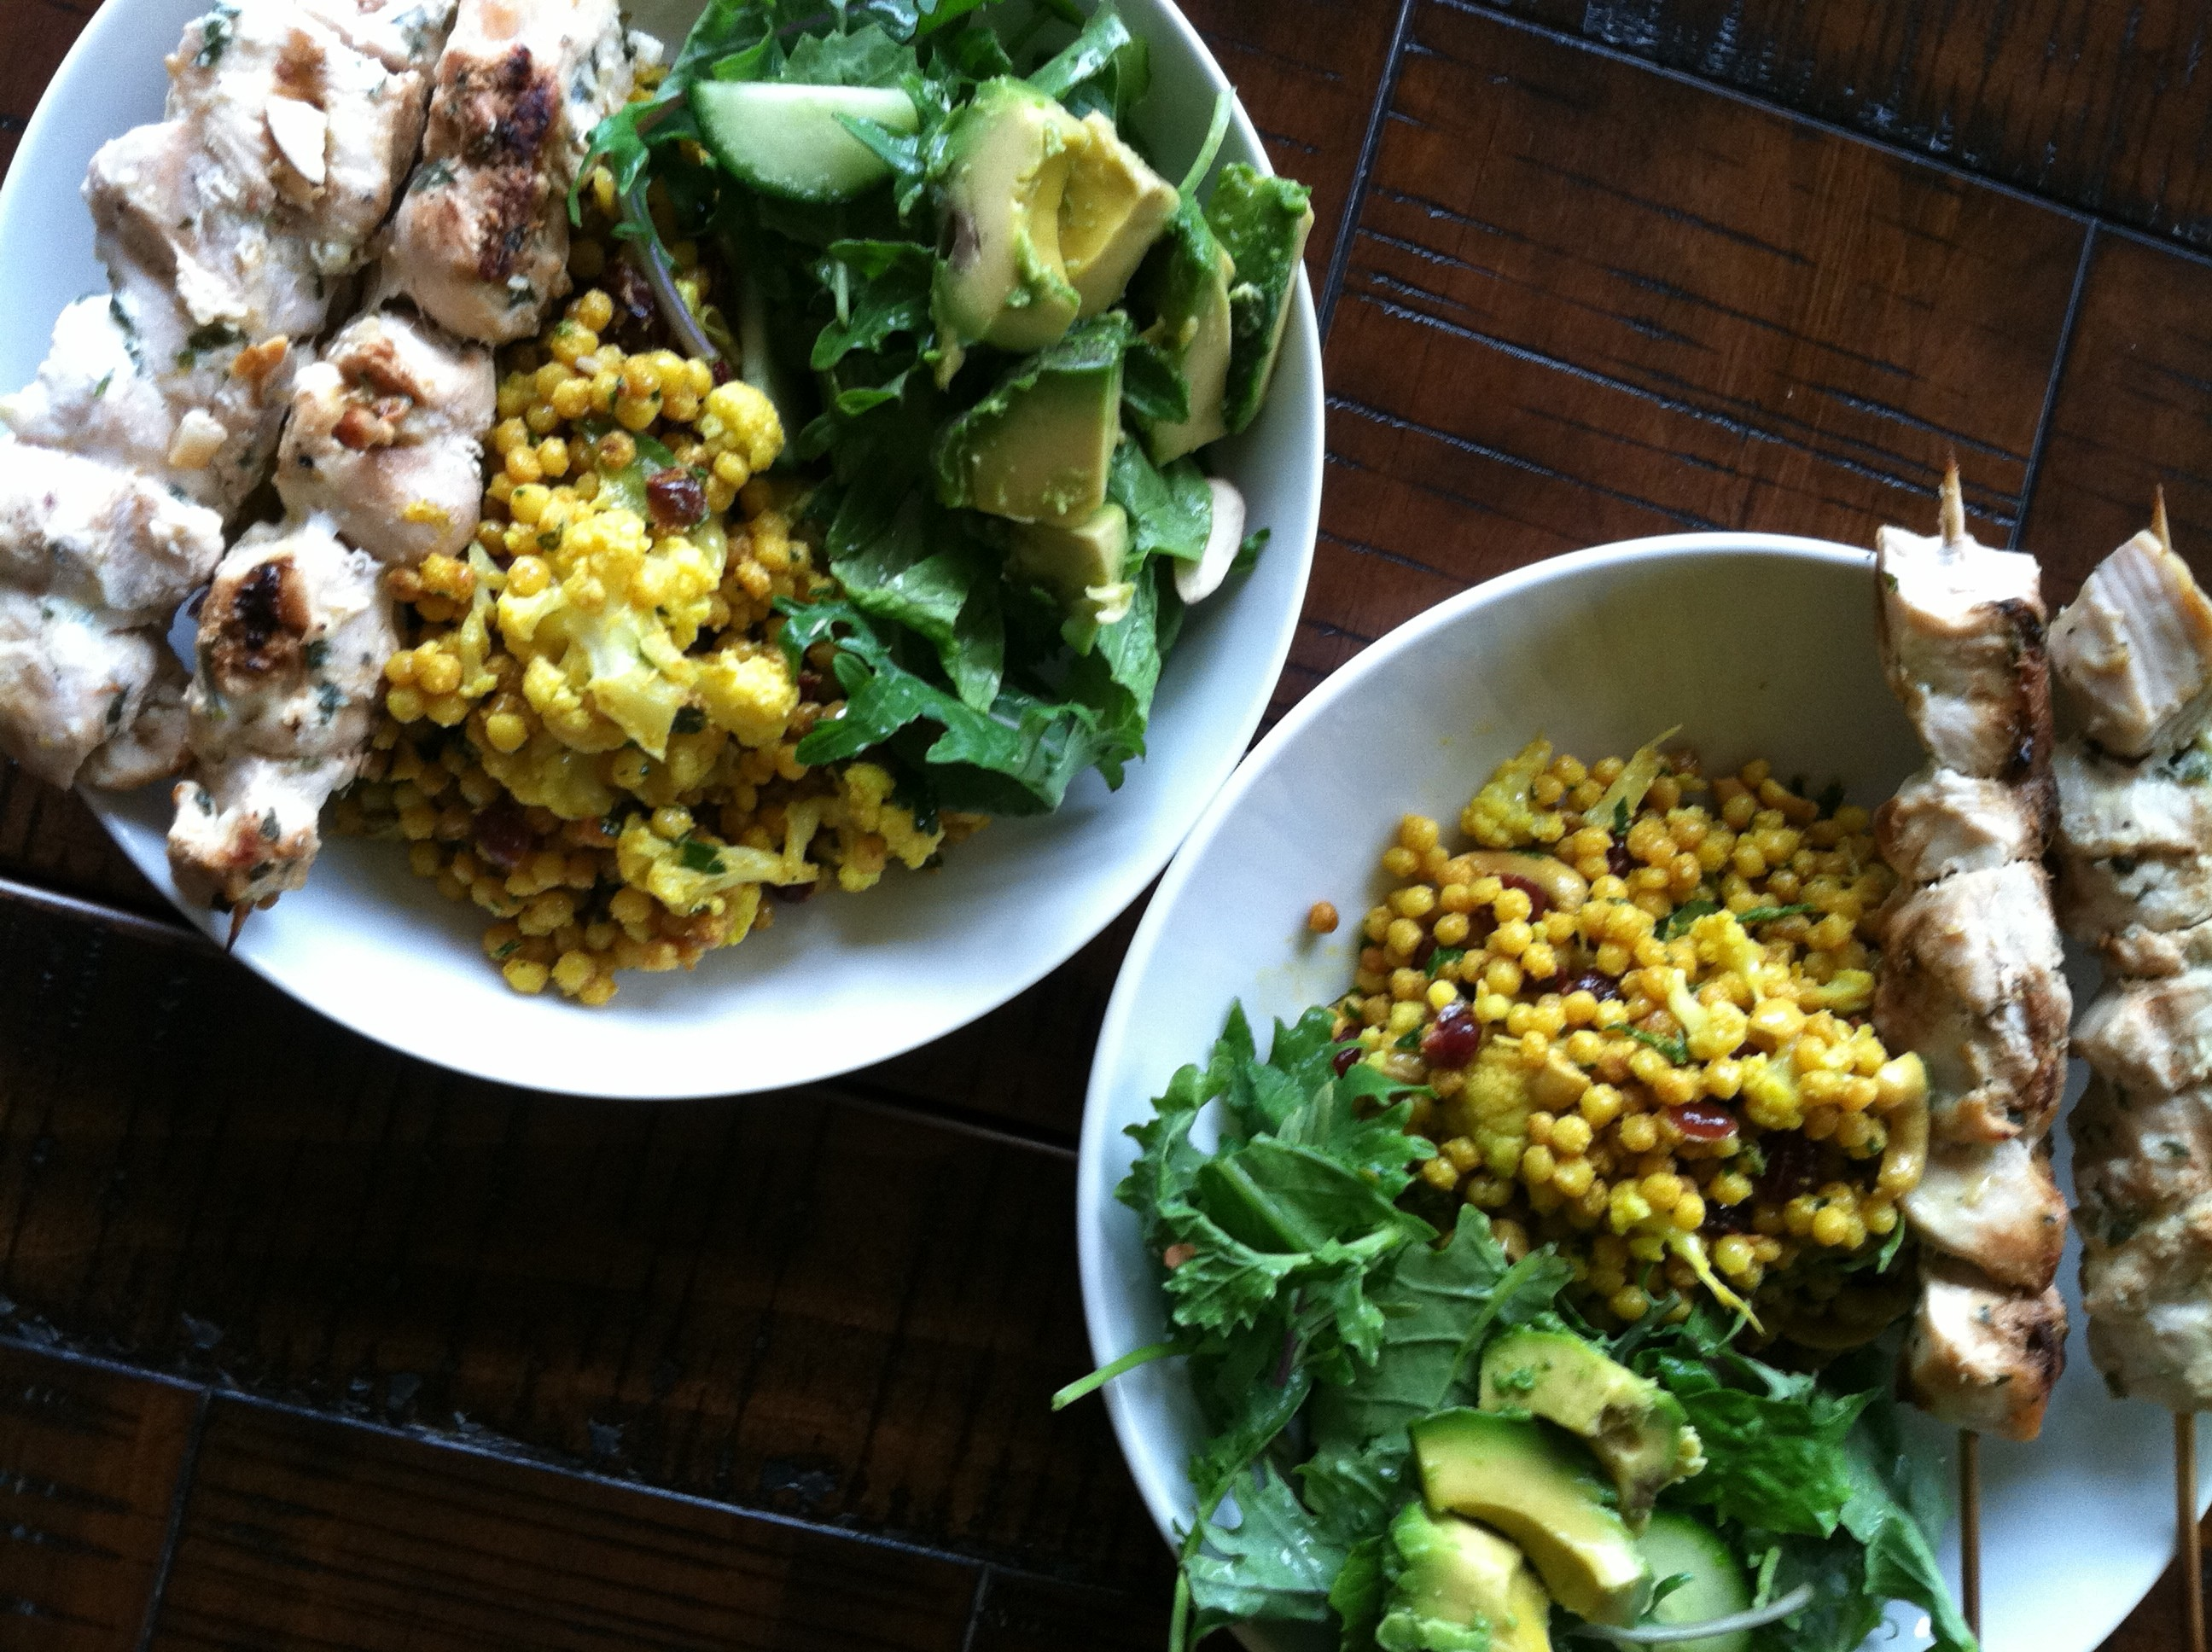 Israeli Cous Cous Salad with Roasted Cauliflower